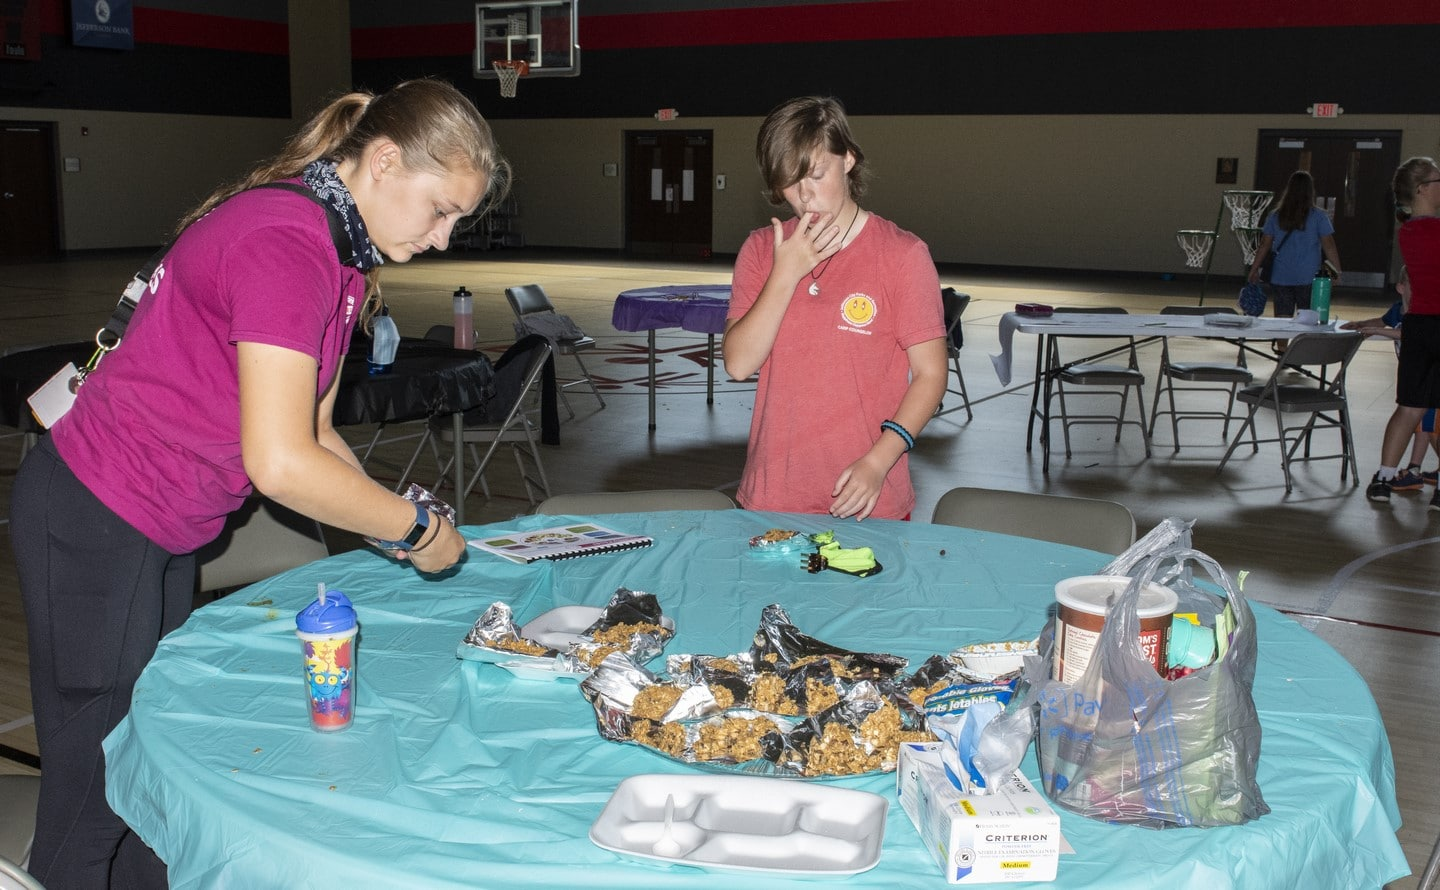 A volunteer and an athlete make snacks